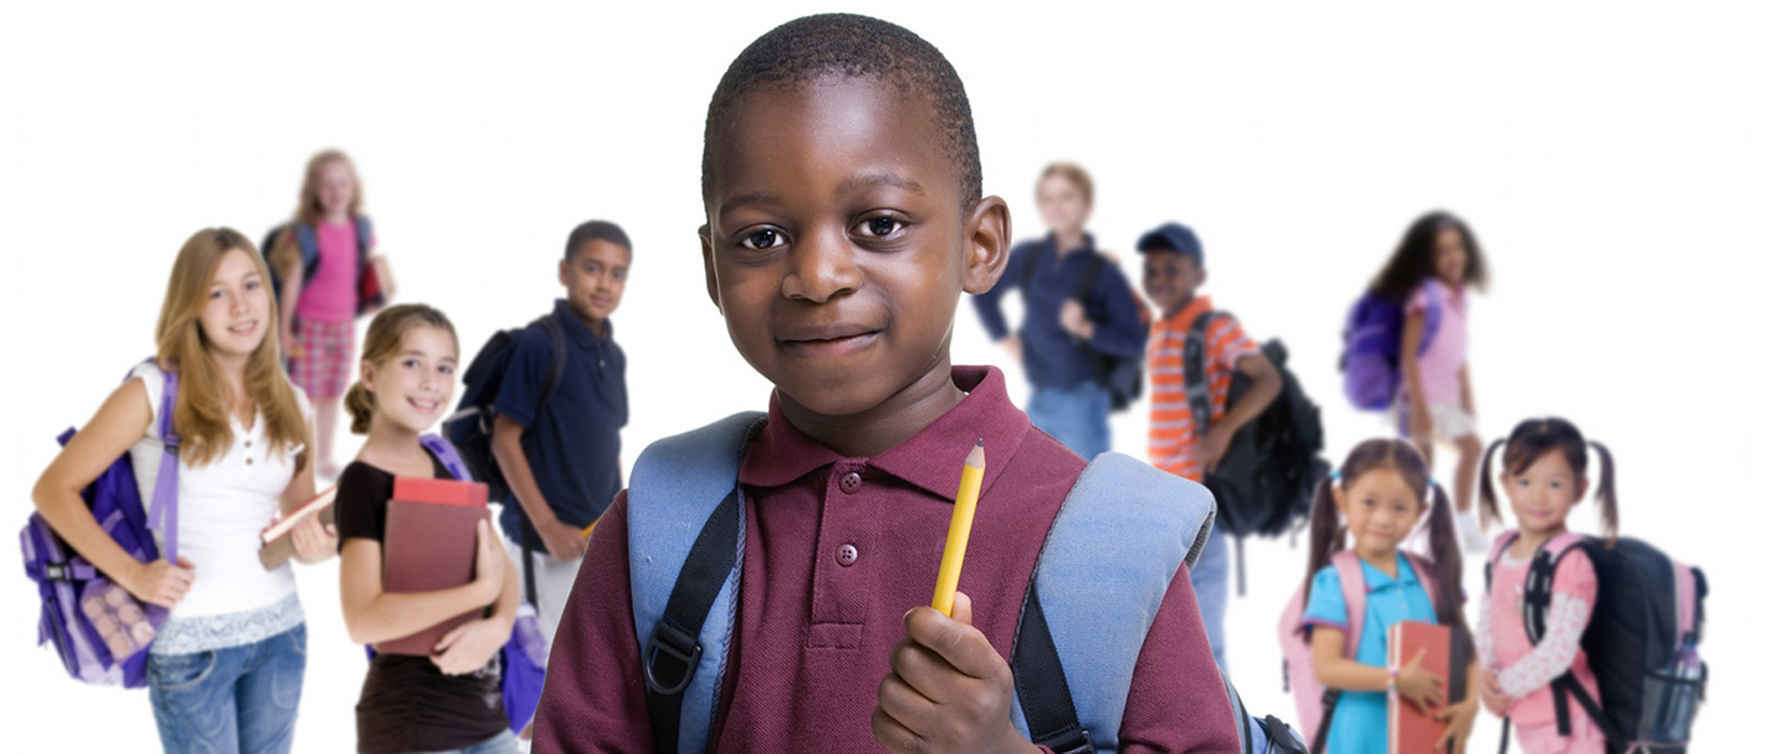 Provide school supplies for students in shelter image